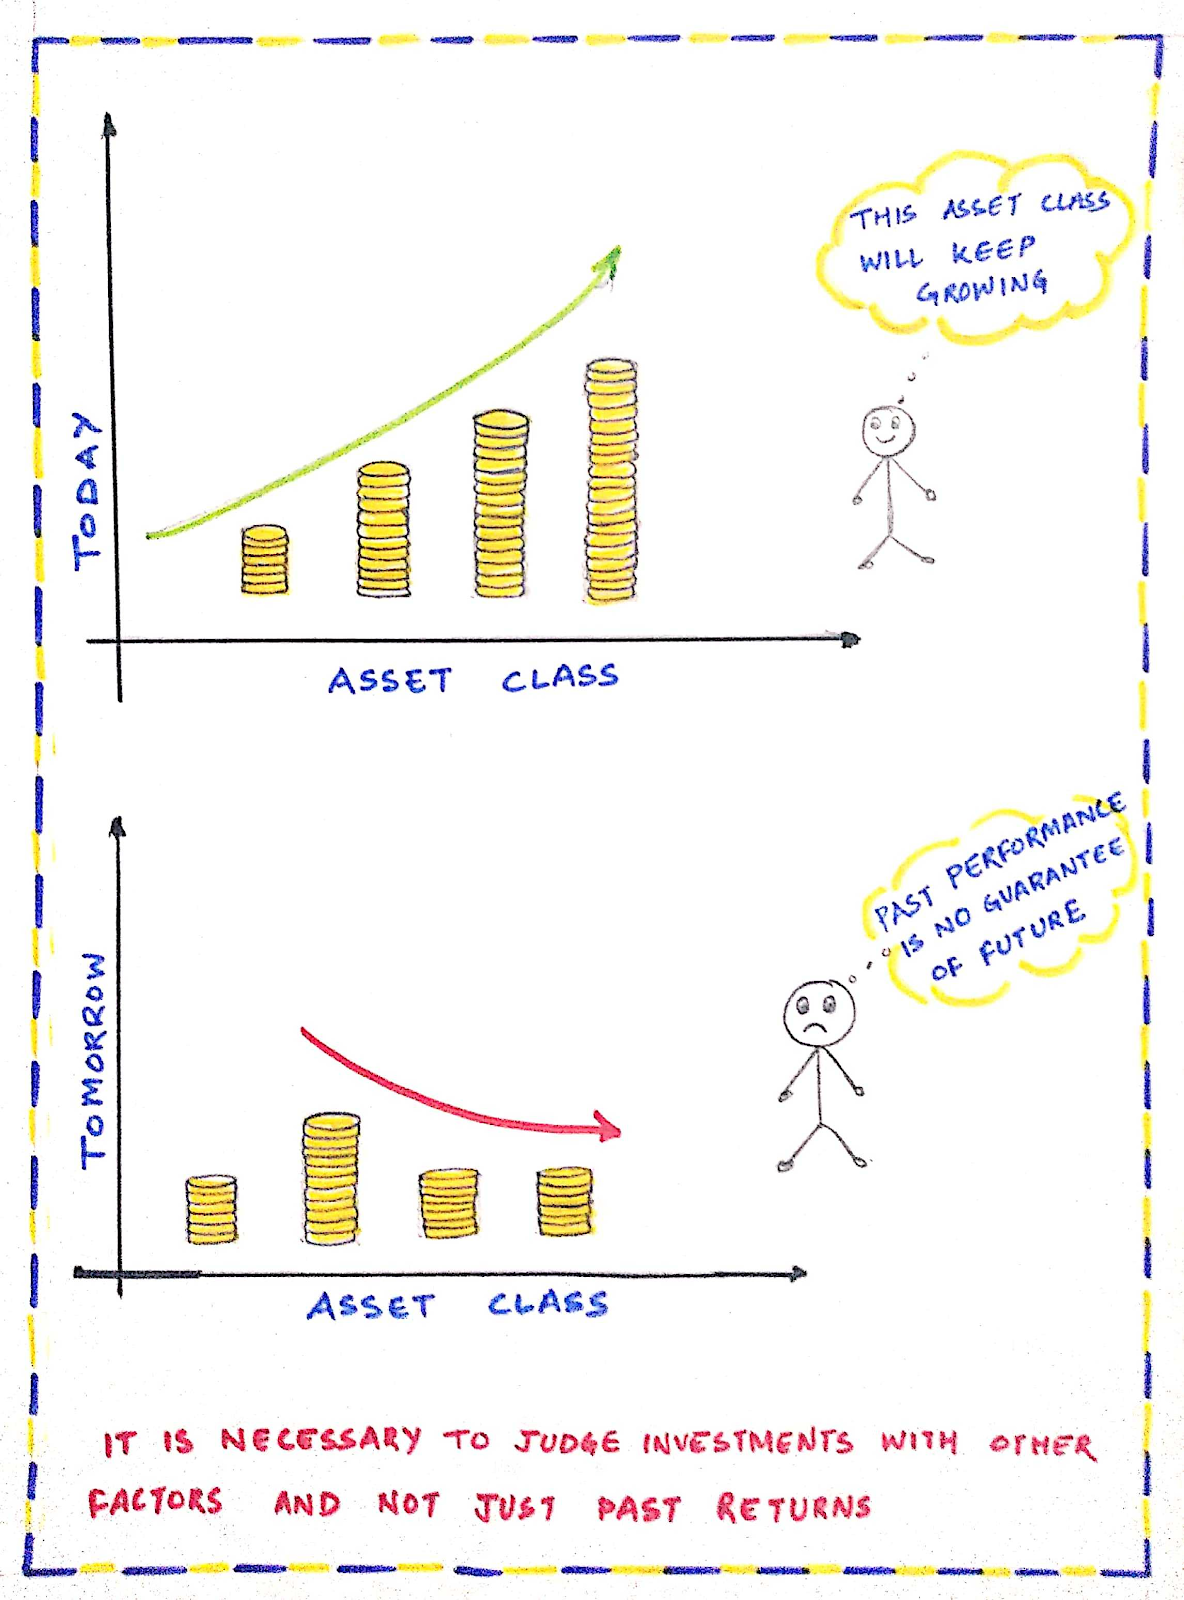 Don't judge asset class with past performance